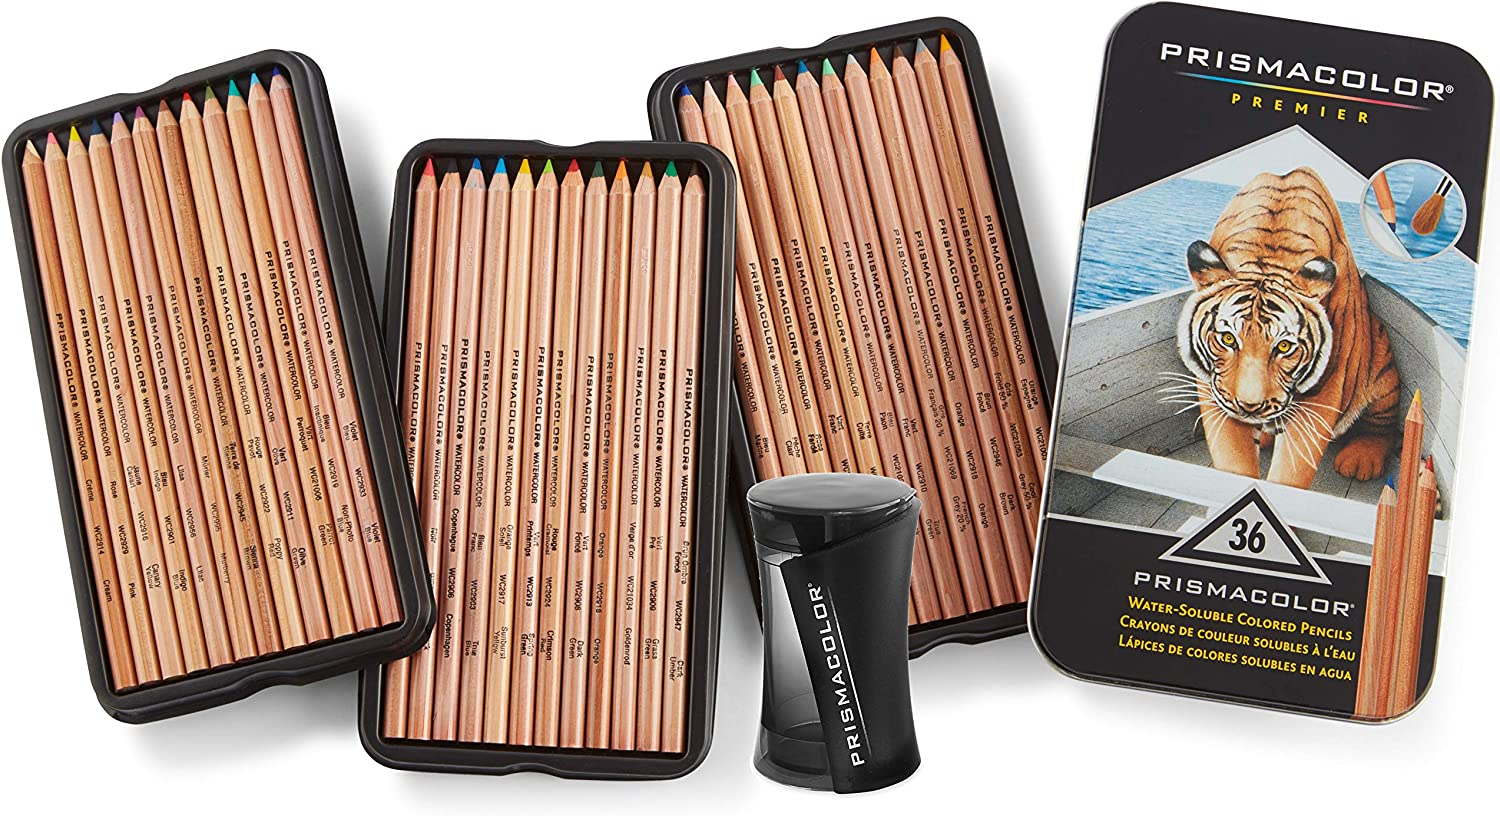 Prismacolor Premier Water-Soluble Colored Pencils, 36 Pack with Pencil Sharpener